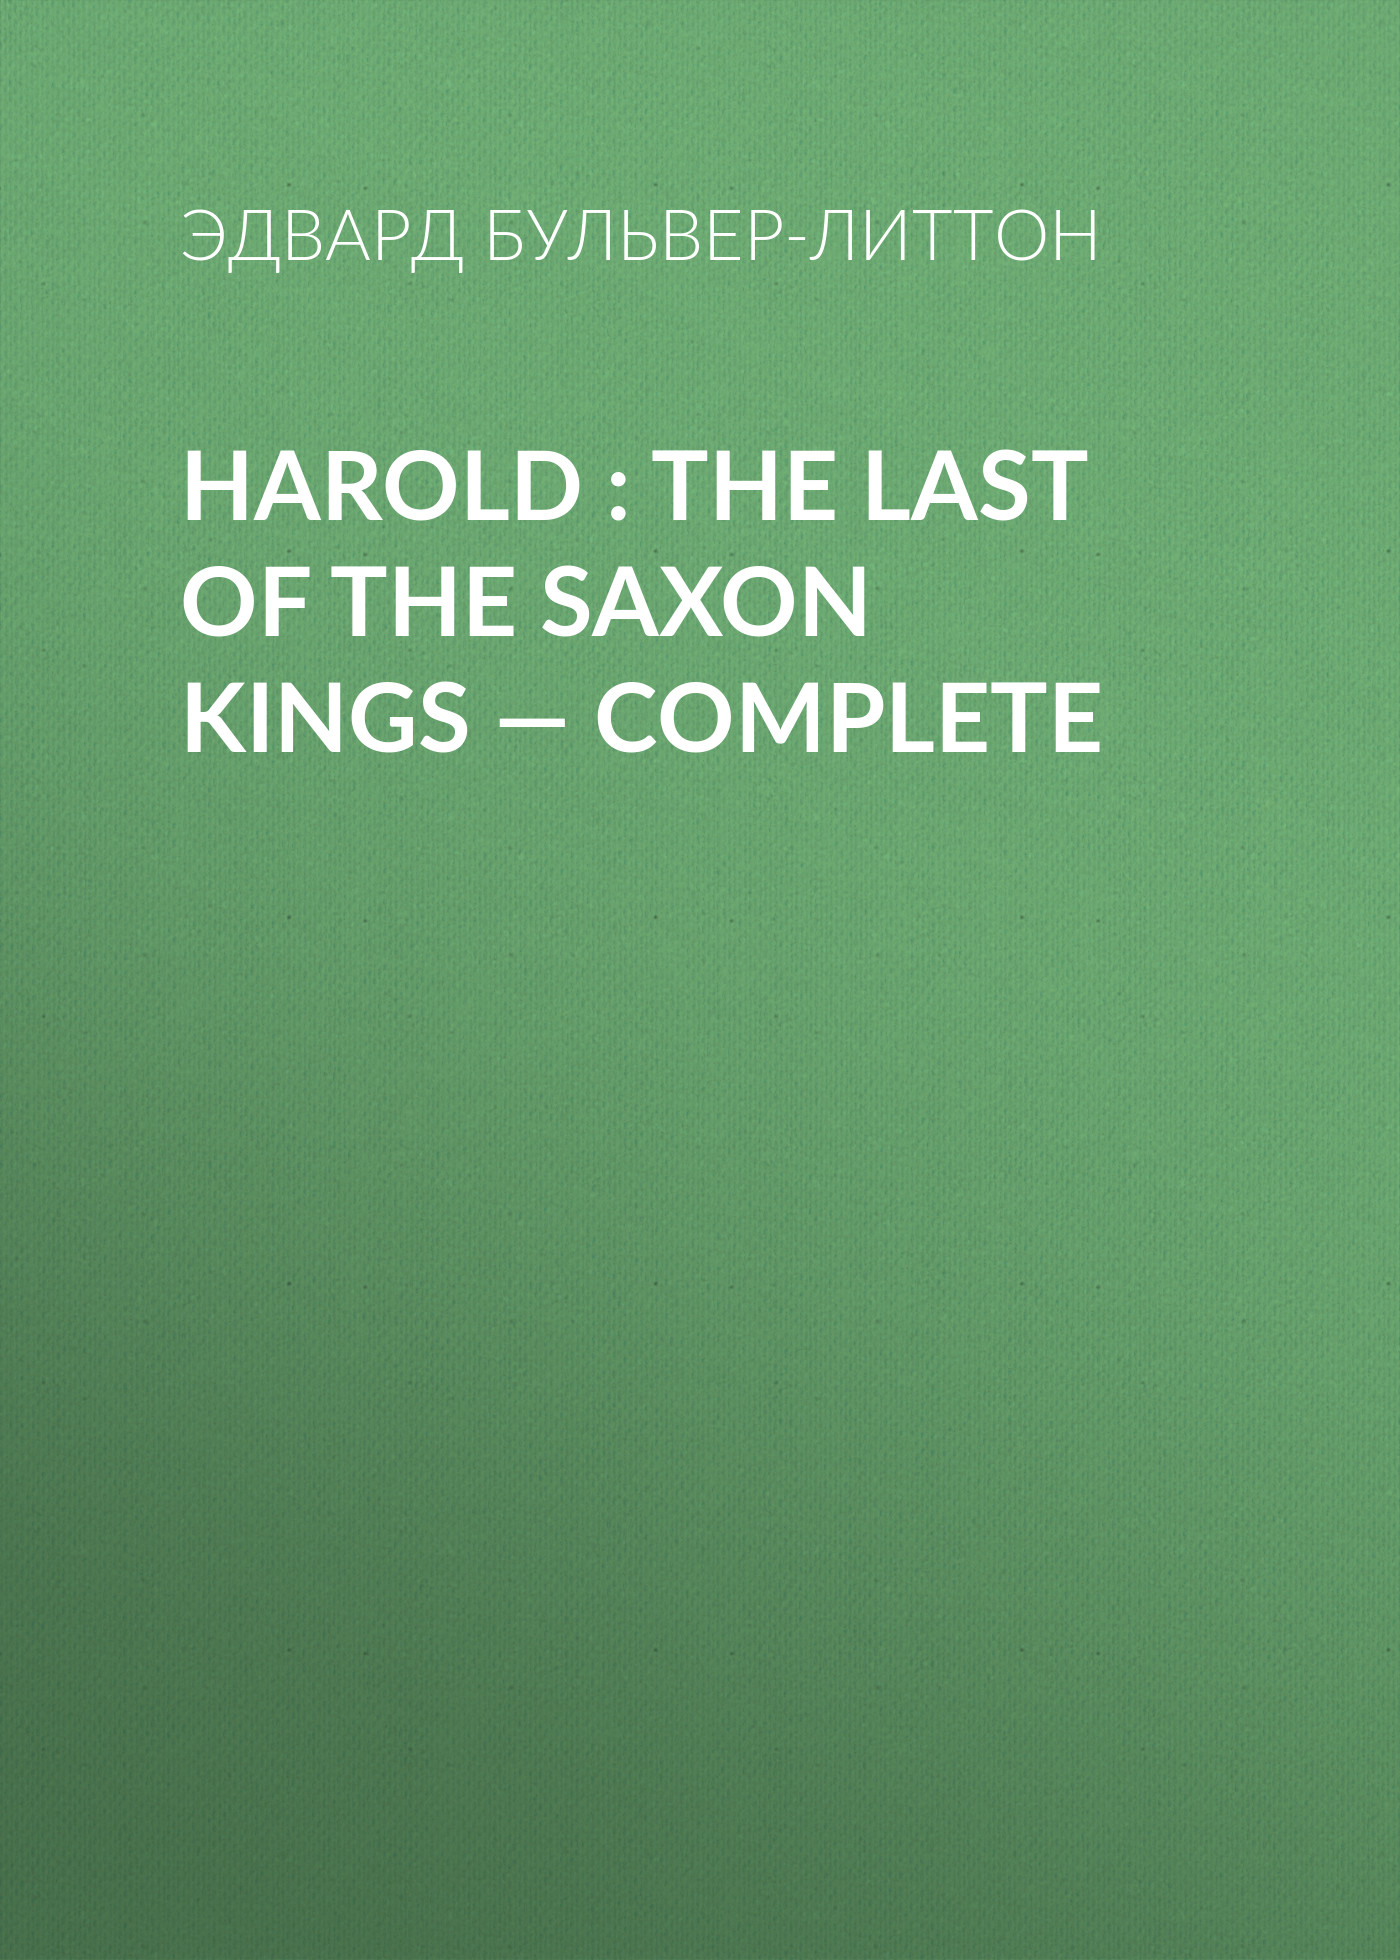 Эдвард Бульвер-Литтон Harold : the Last of the Saxon Kings — Complete эдвард бульвер литтон harold the last of the saxon kings volume 10